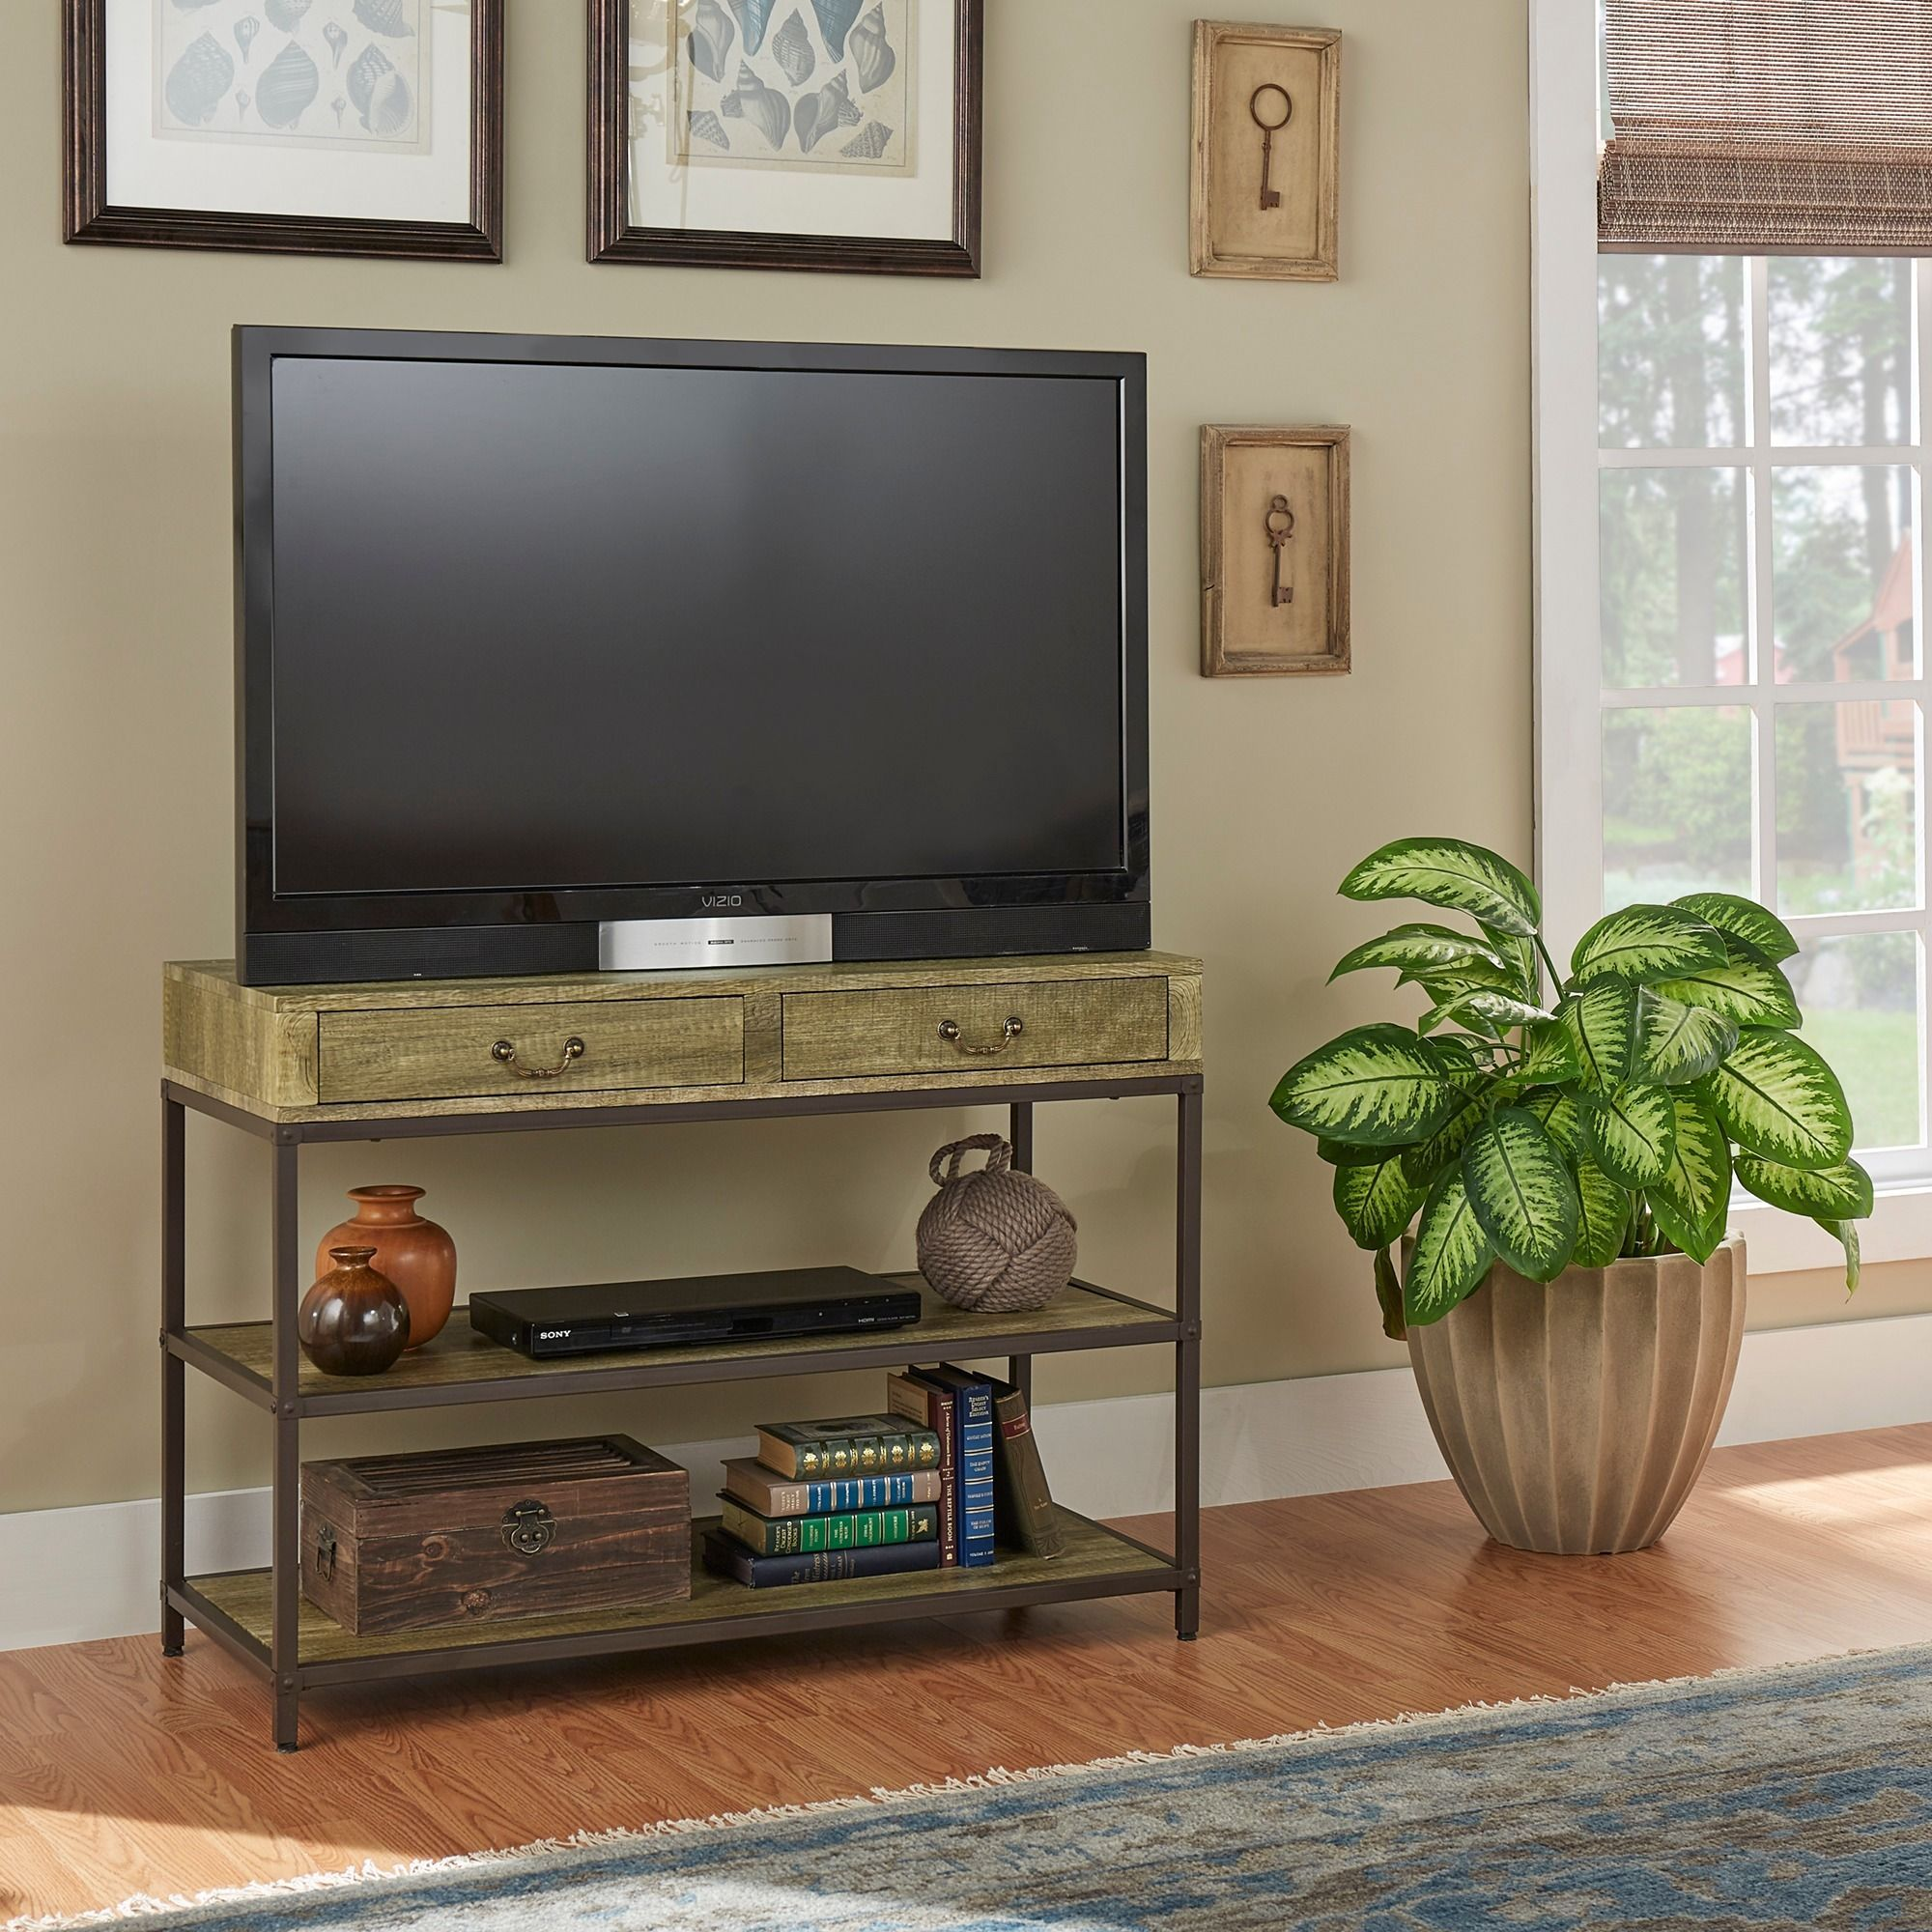 Sadie Industrial Rustic Media Console / Entryway table by iNSPIRE Q Classic  (Media Console)